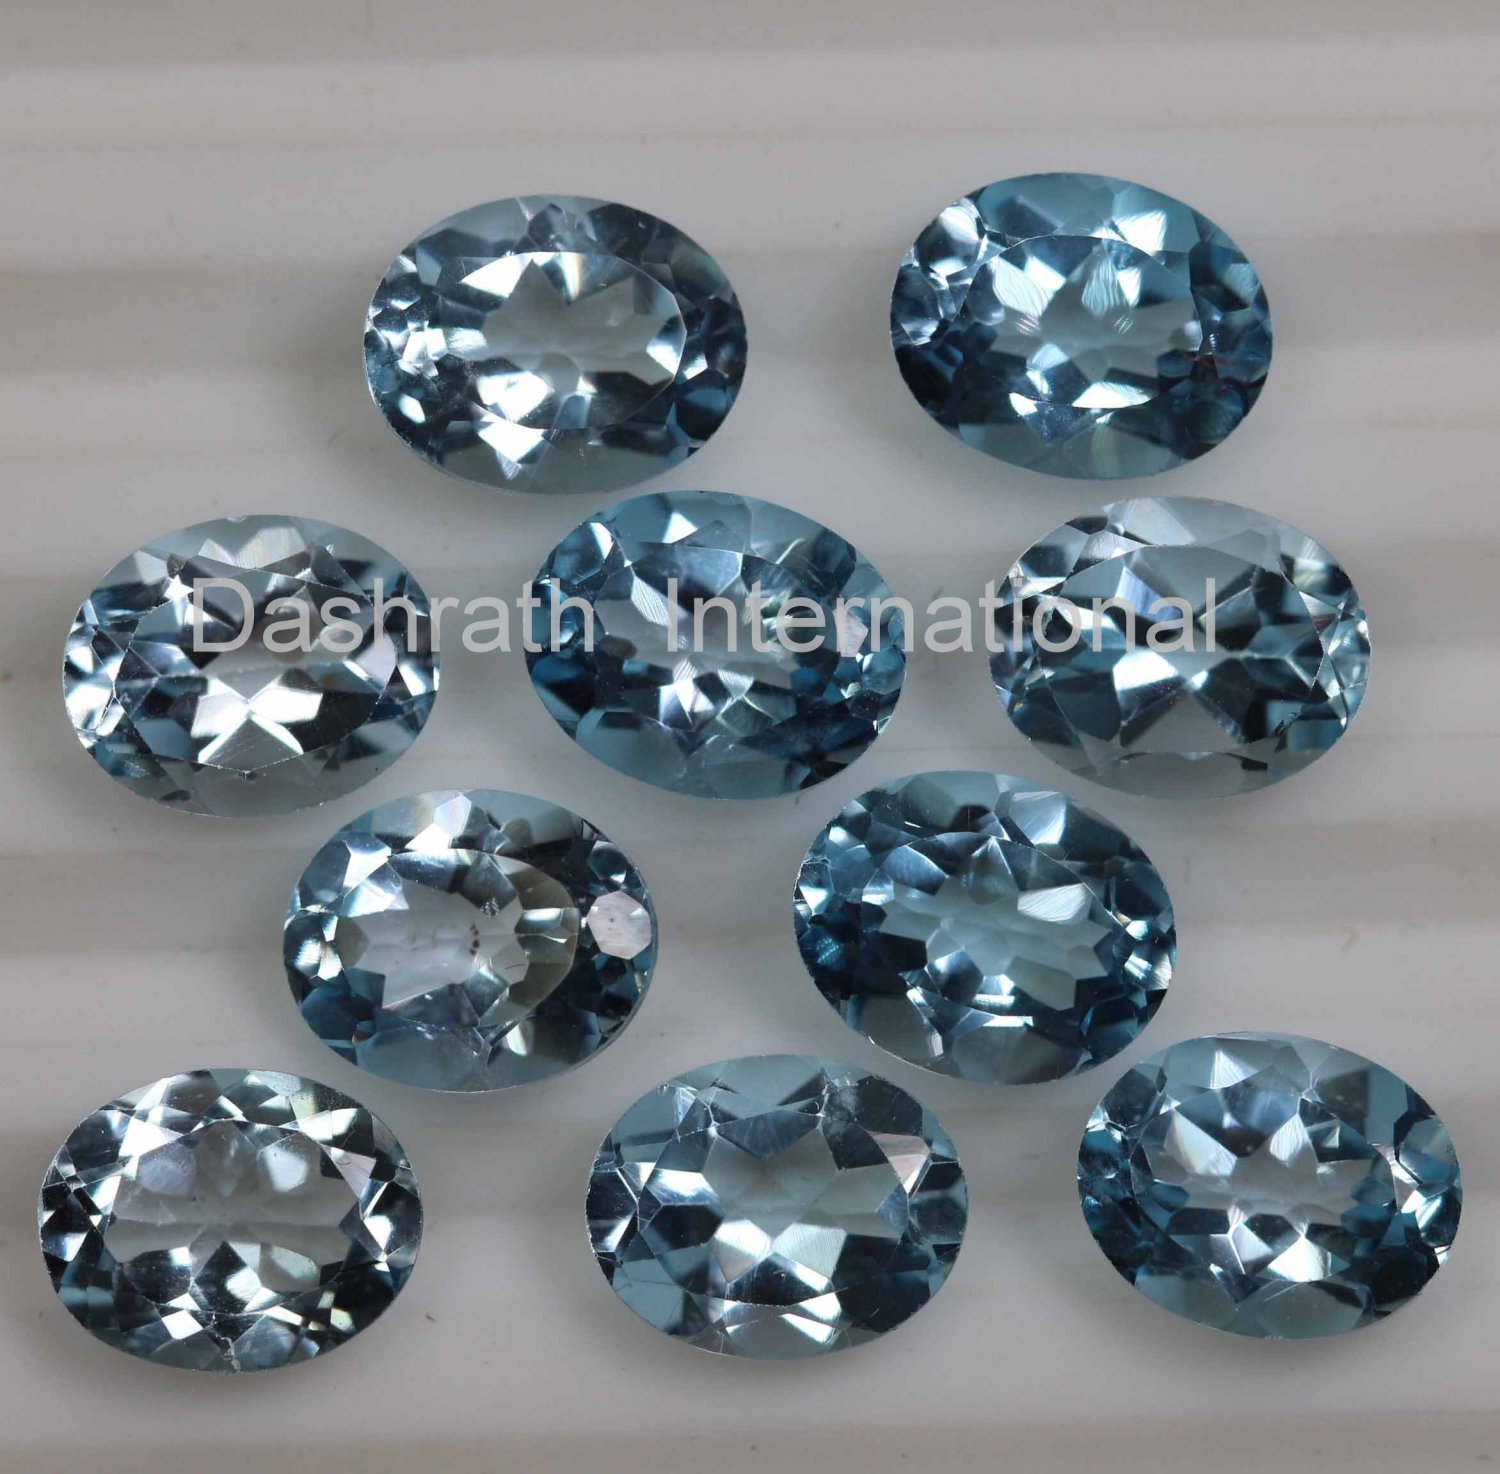 7x5mm  Natural Sky Blue Topaz Faceted Cut Oval  1 Piece  Top Quality Loose Gemstone